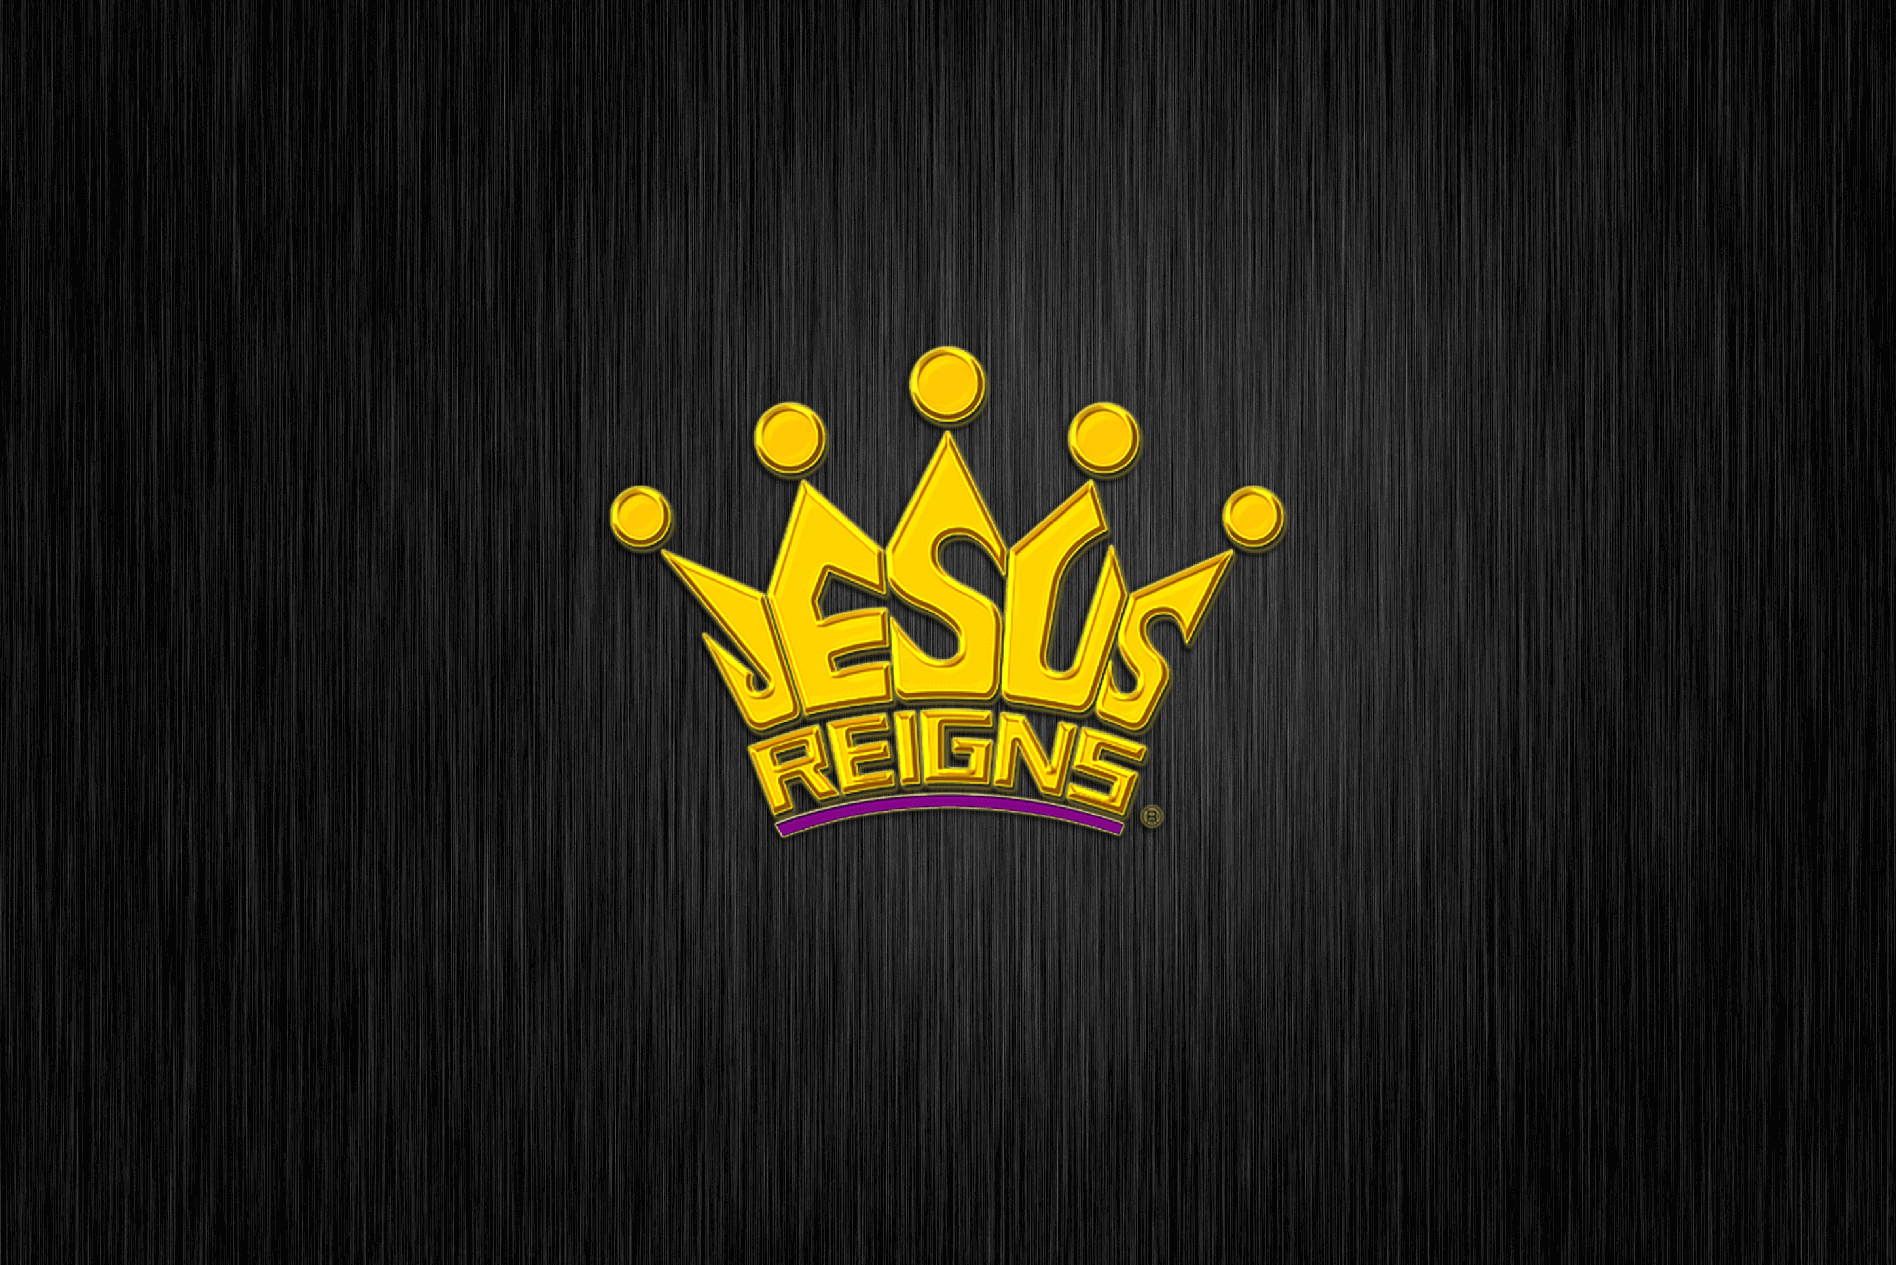 jesus reigns Wallpaper HD